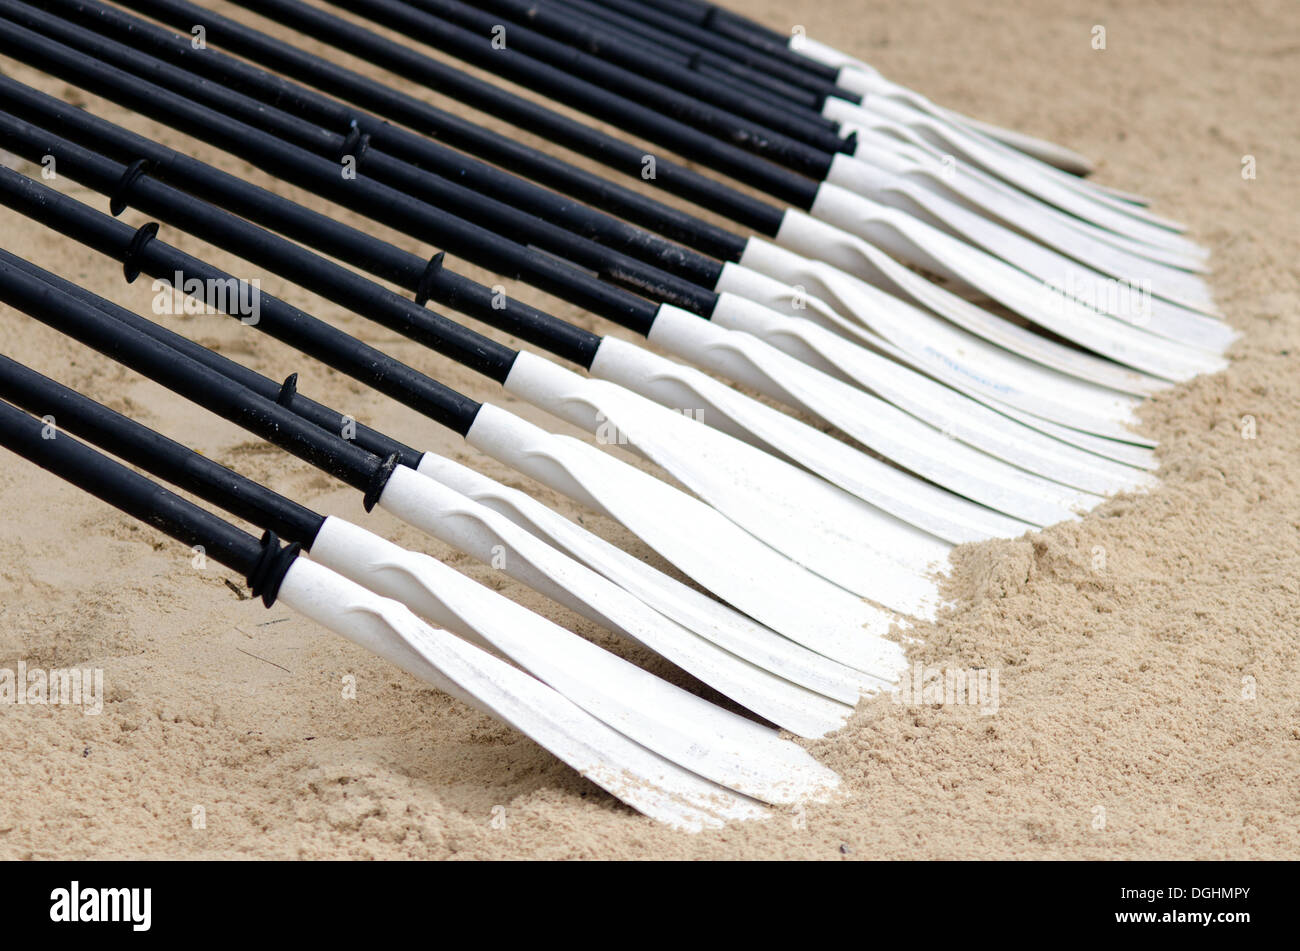 A row of a Canoe and Kayak Paddles - Stock Image